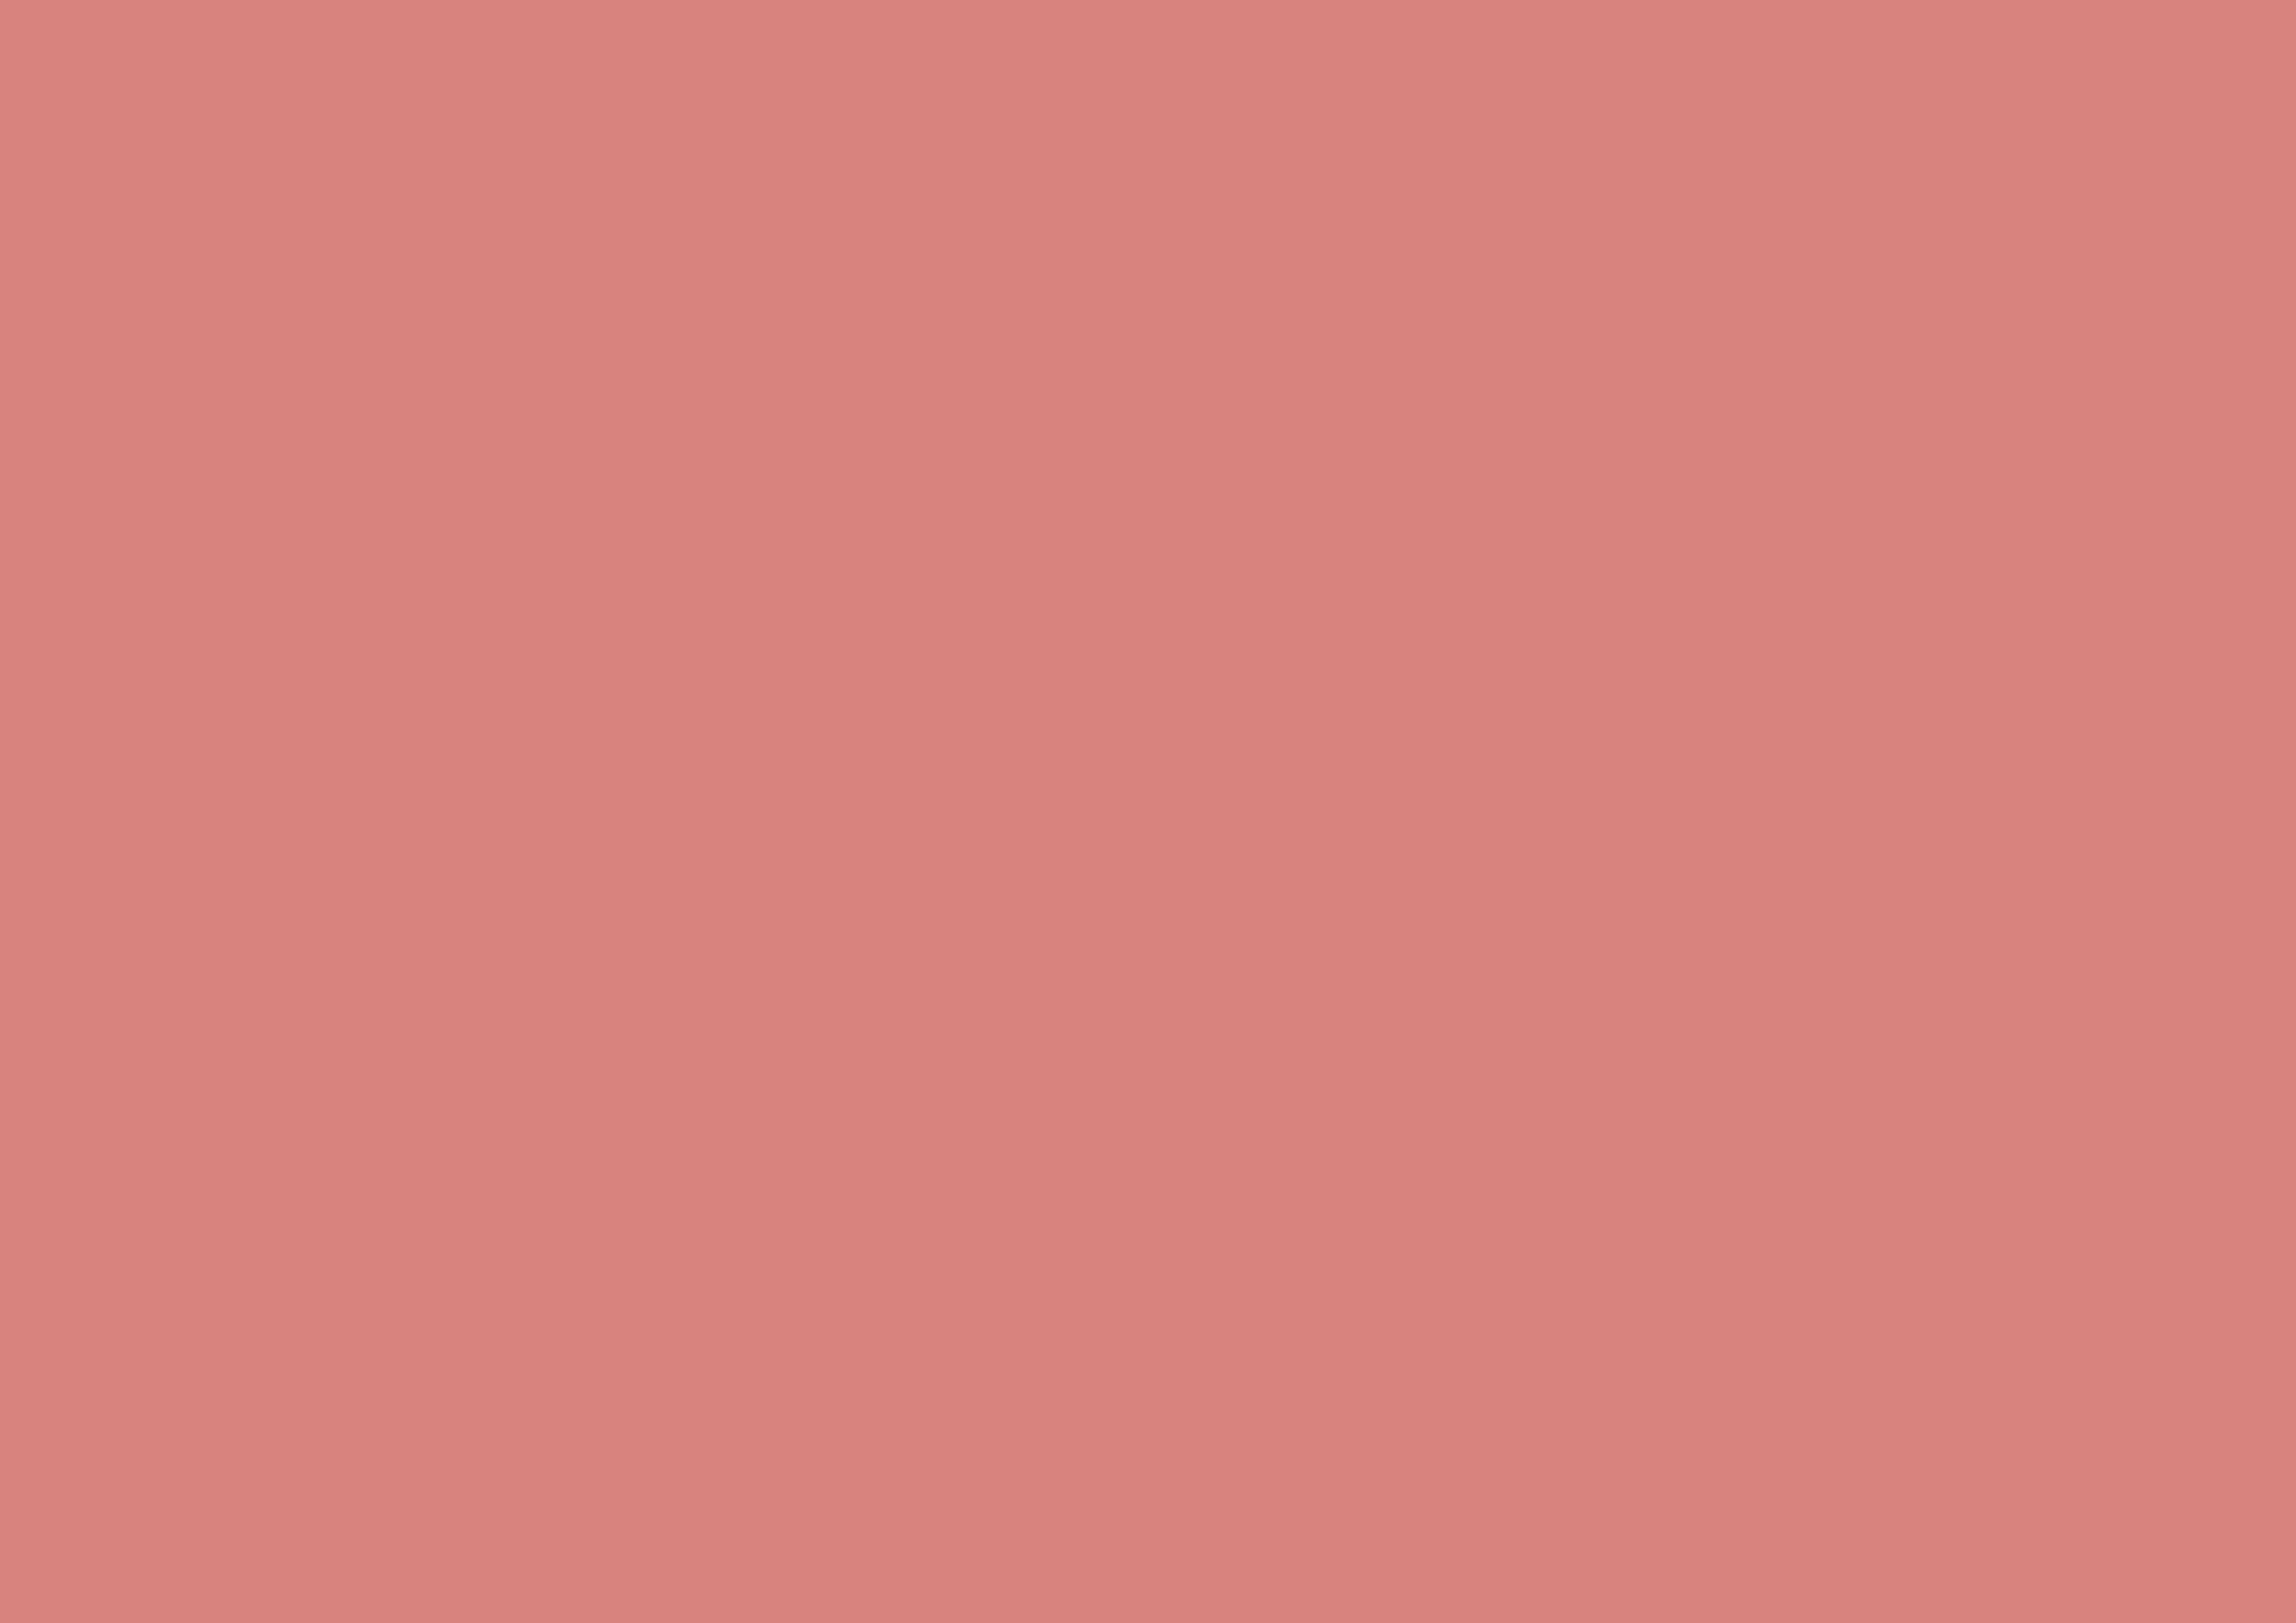 3508x2480 New York Pink Solid Color Background